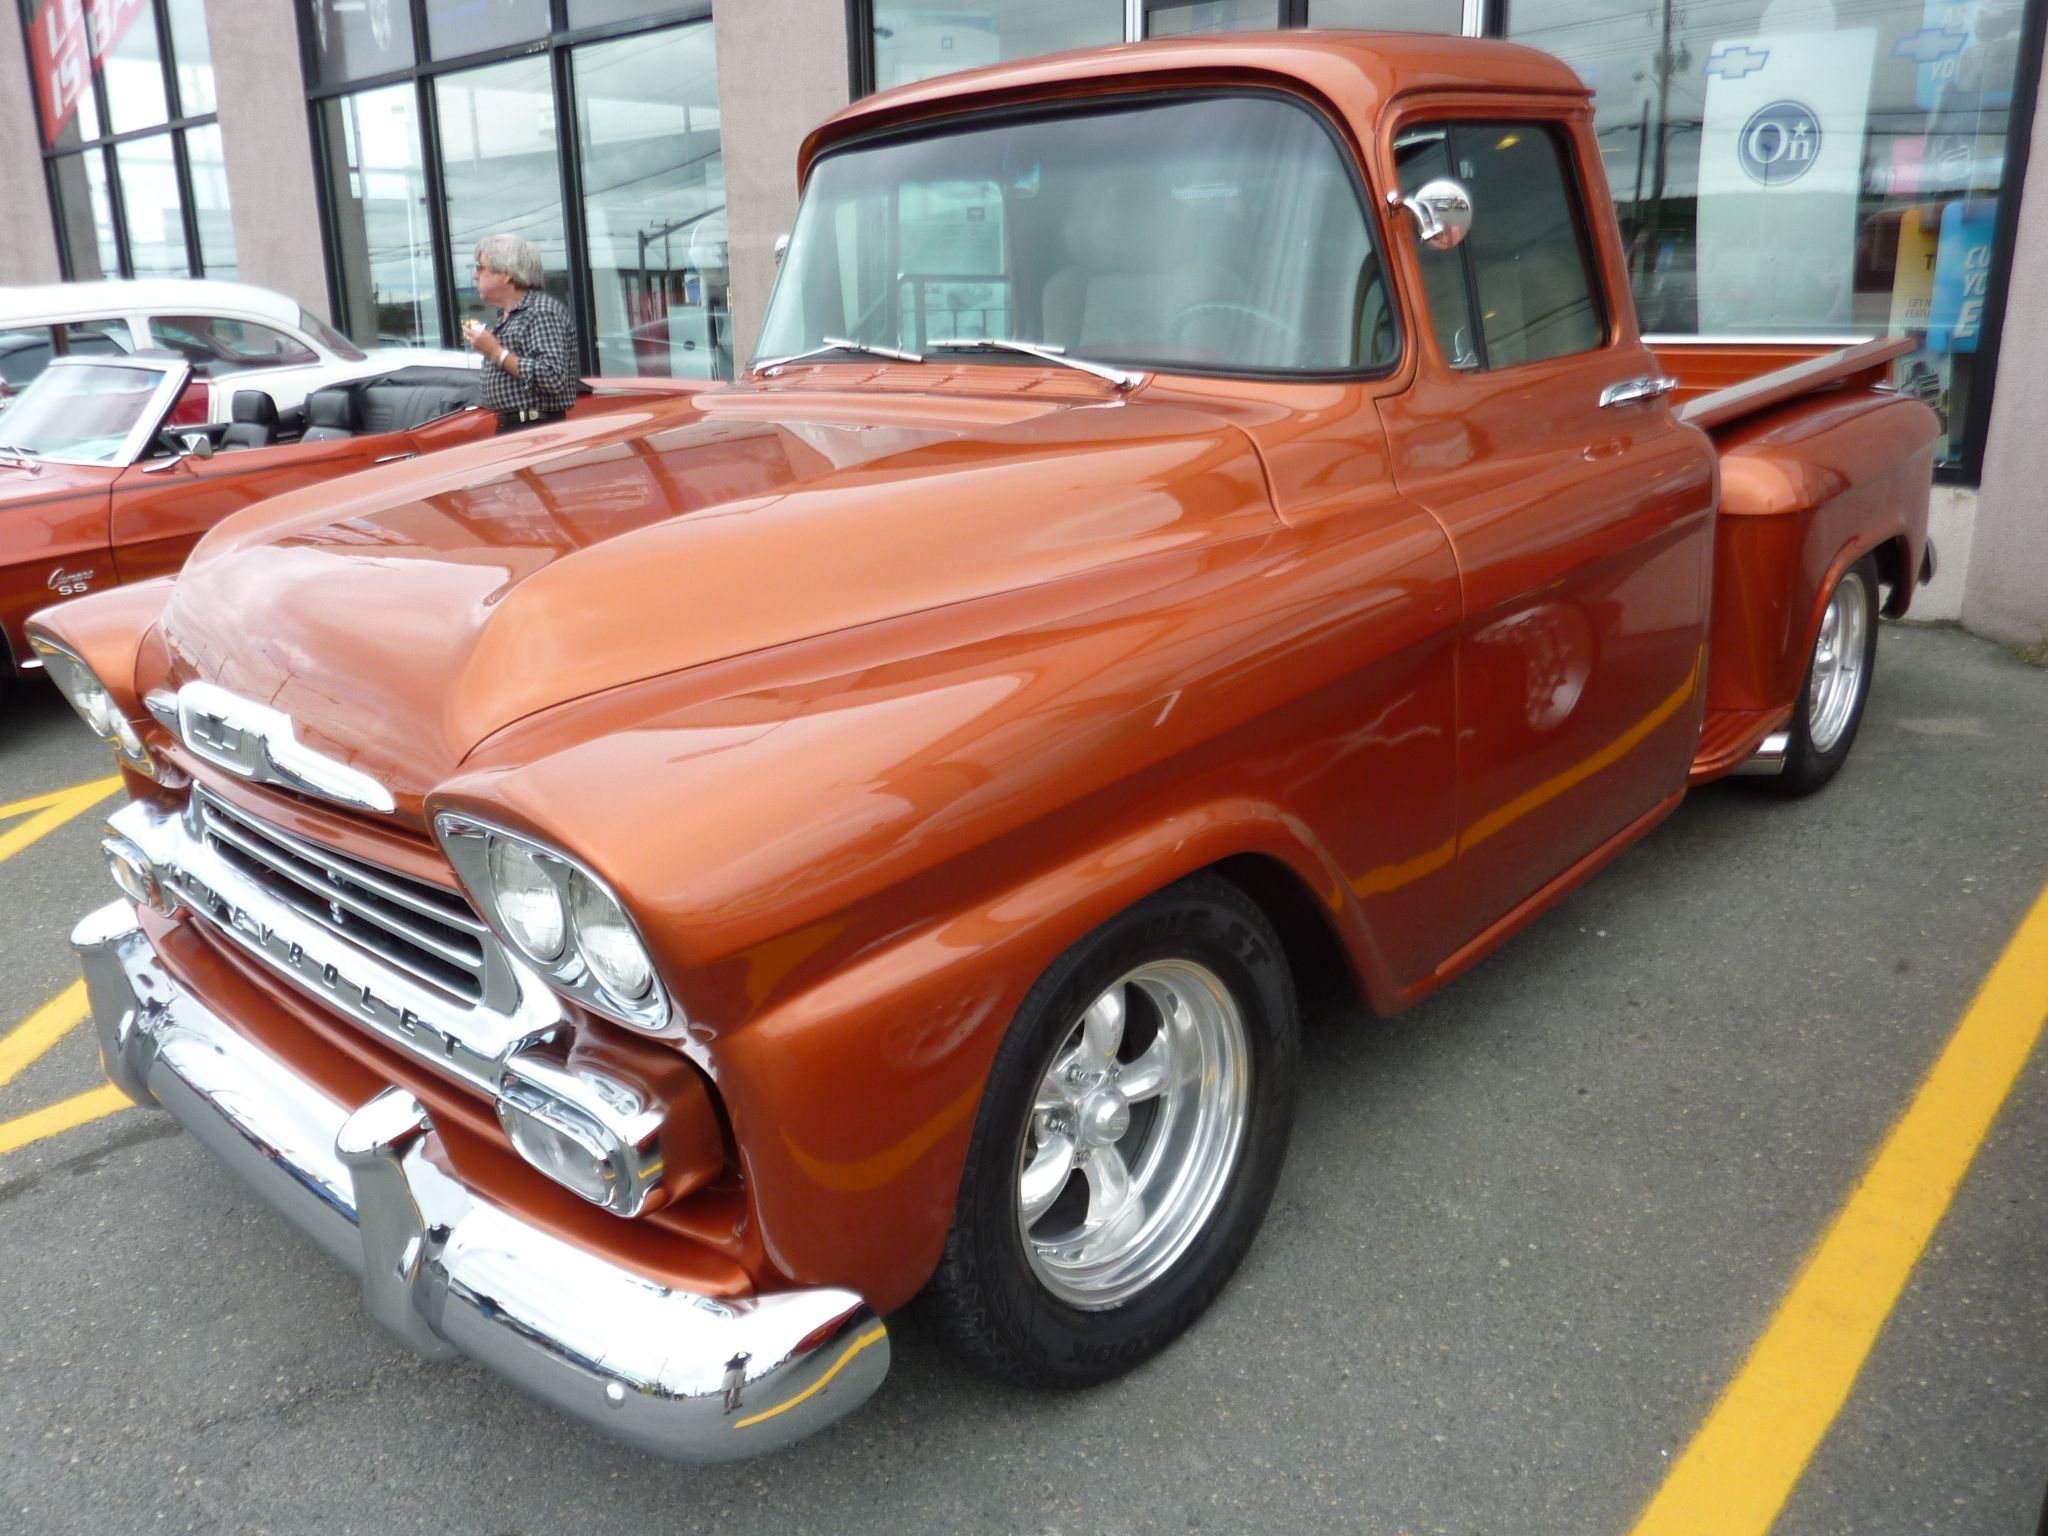 Old Chevrolet pickup truck. | Cars to Dream About | Pinterest ...